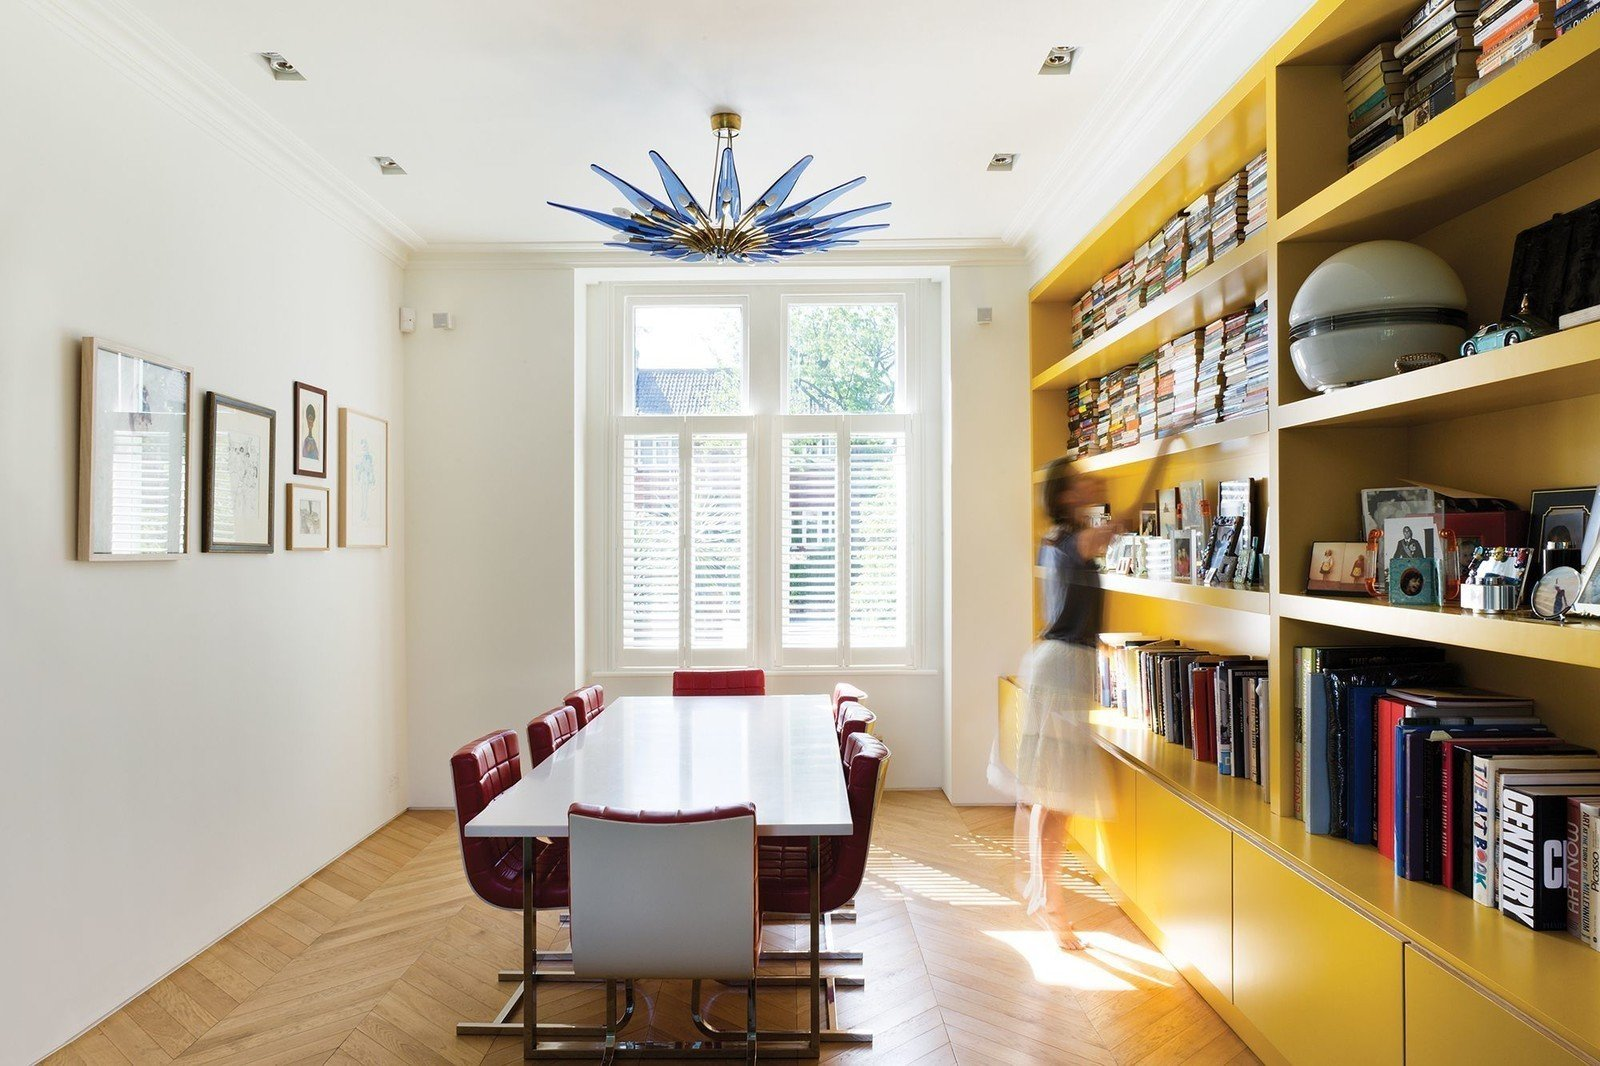 Living Room  Photo 1 of 13 in Bright Bauhaus Colors Fill This Brick Edwardian House in London